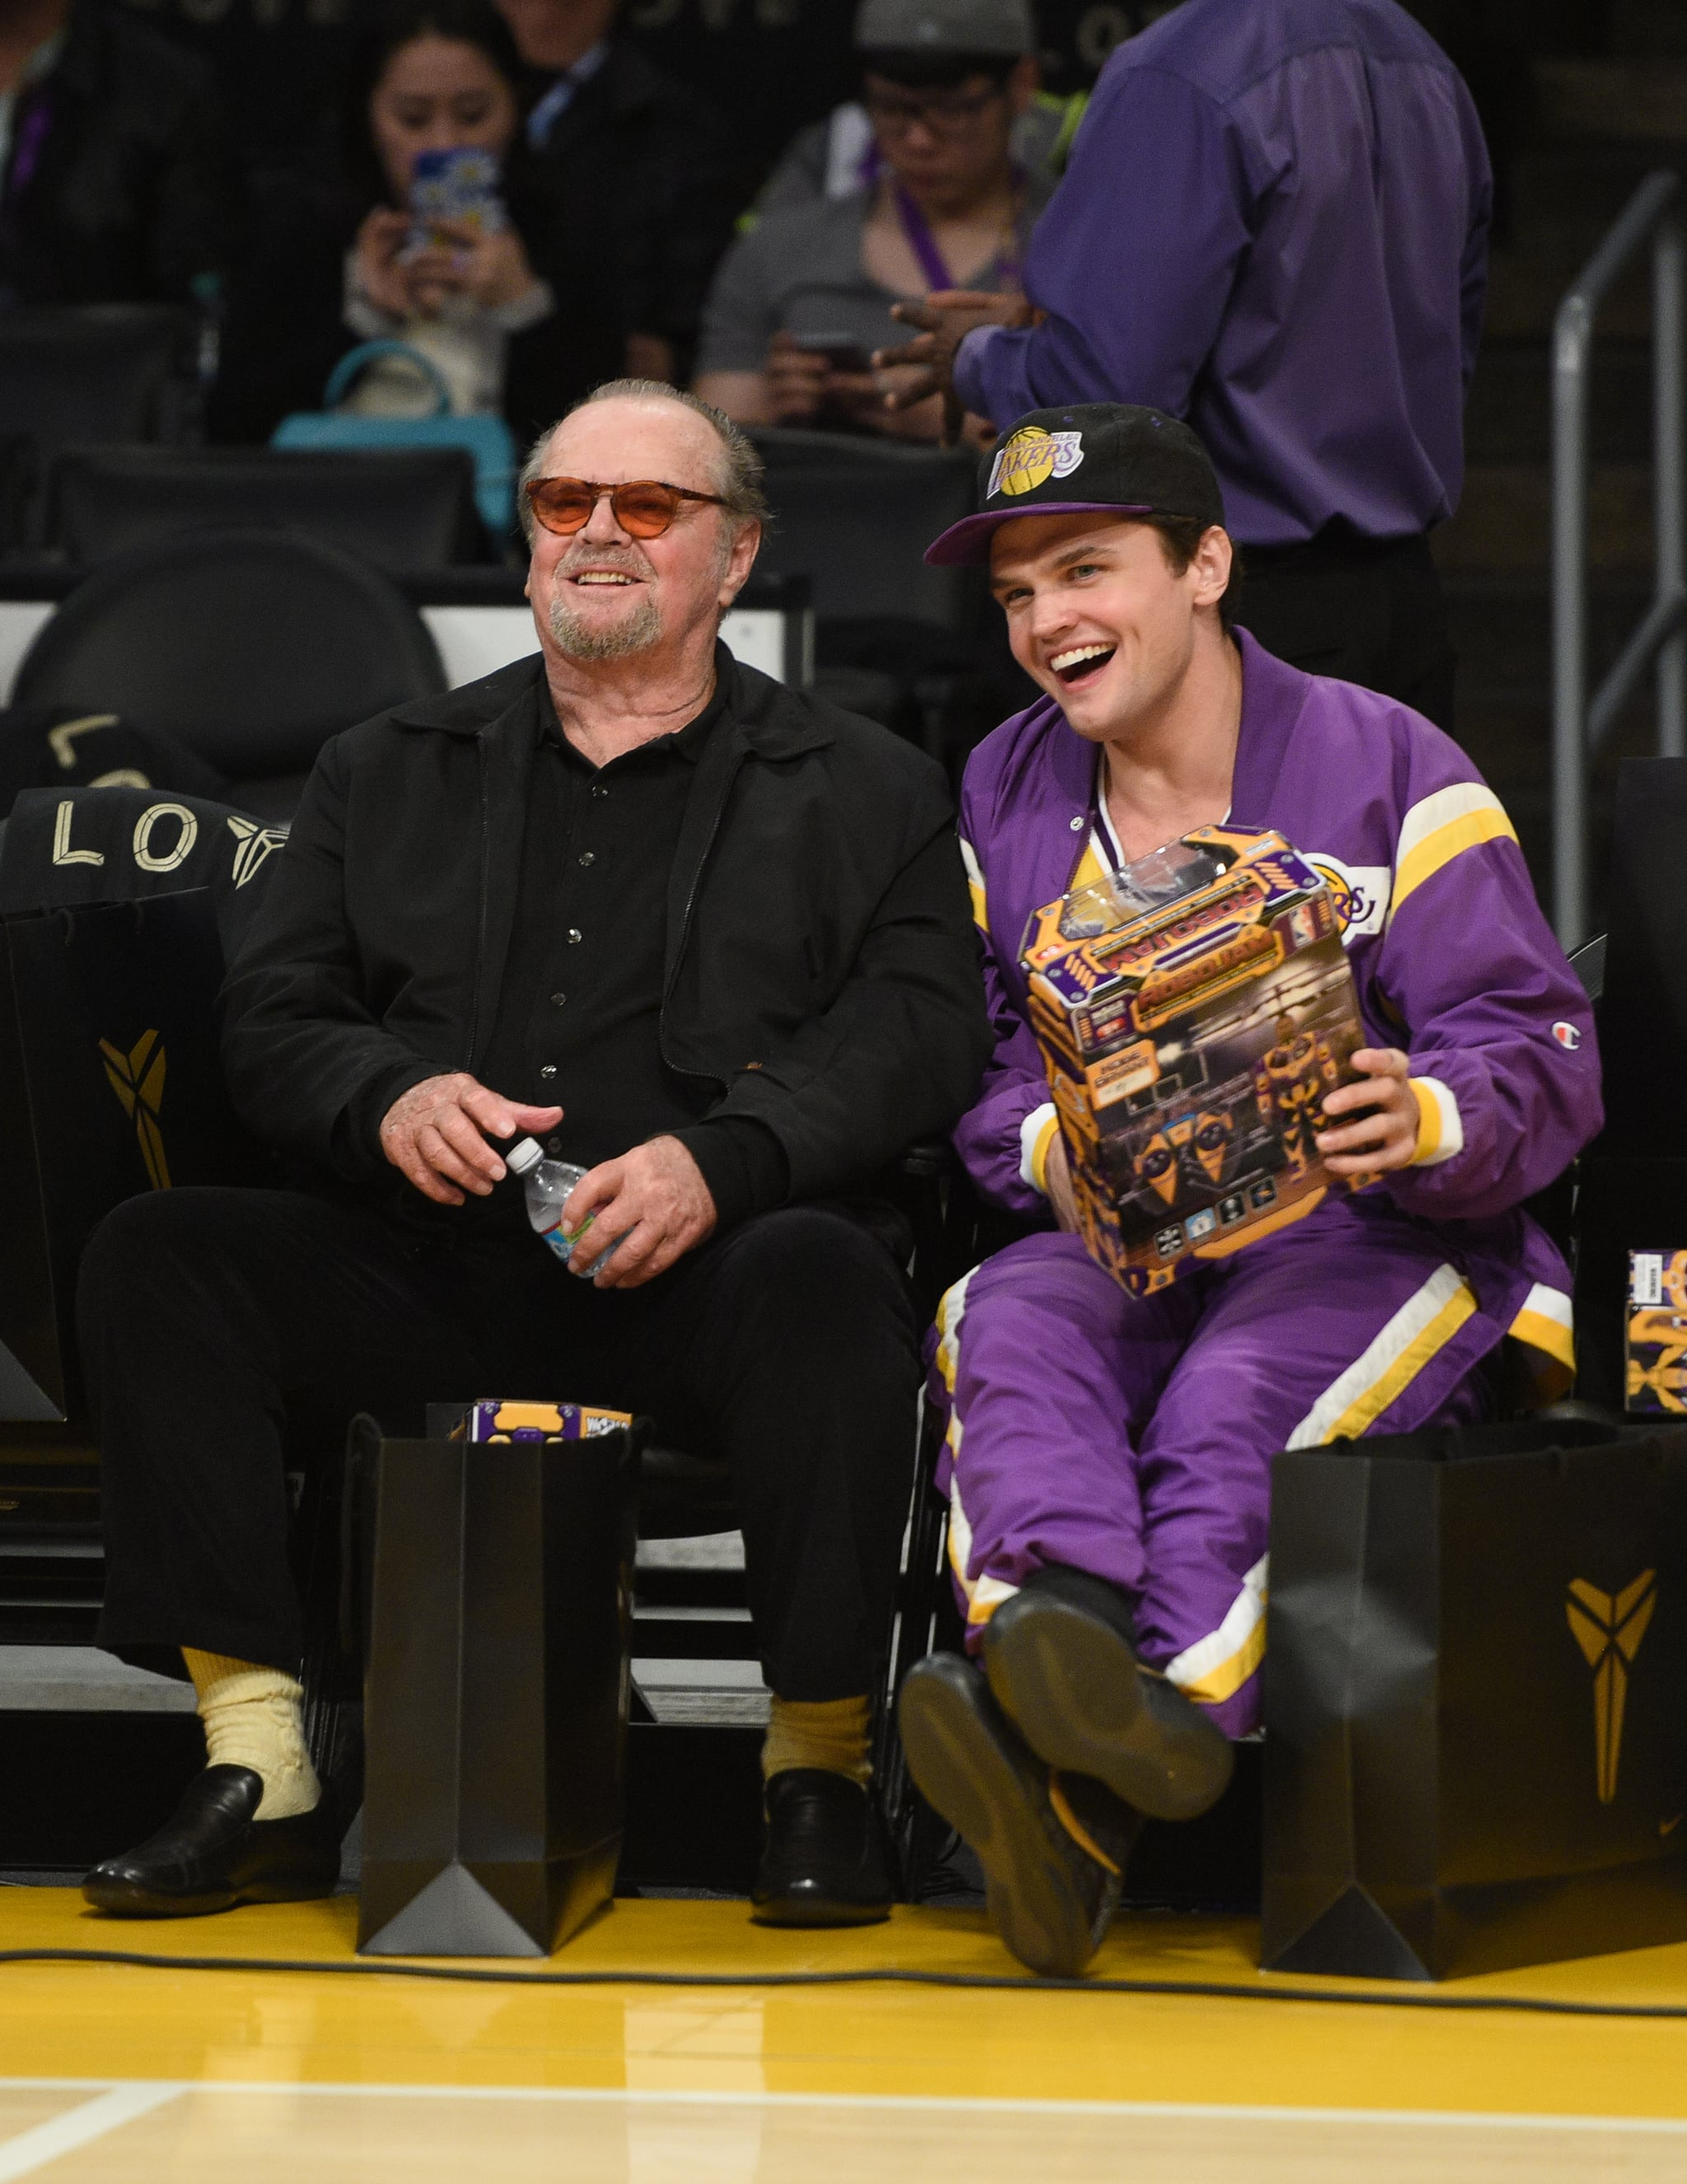 Jack And Ray Nicholson 17 Celebrities Who Cheered On Kobe Bryant At His Last Lakers Game Popsugar Celebrity Photo 7 Reviewer and beta reader of fantasy/horror, lover of english football and a glass of fine wine to accompany a great meal. jack and ray nicholson 17 celebrities